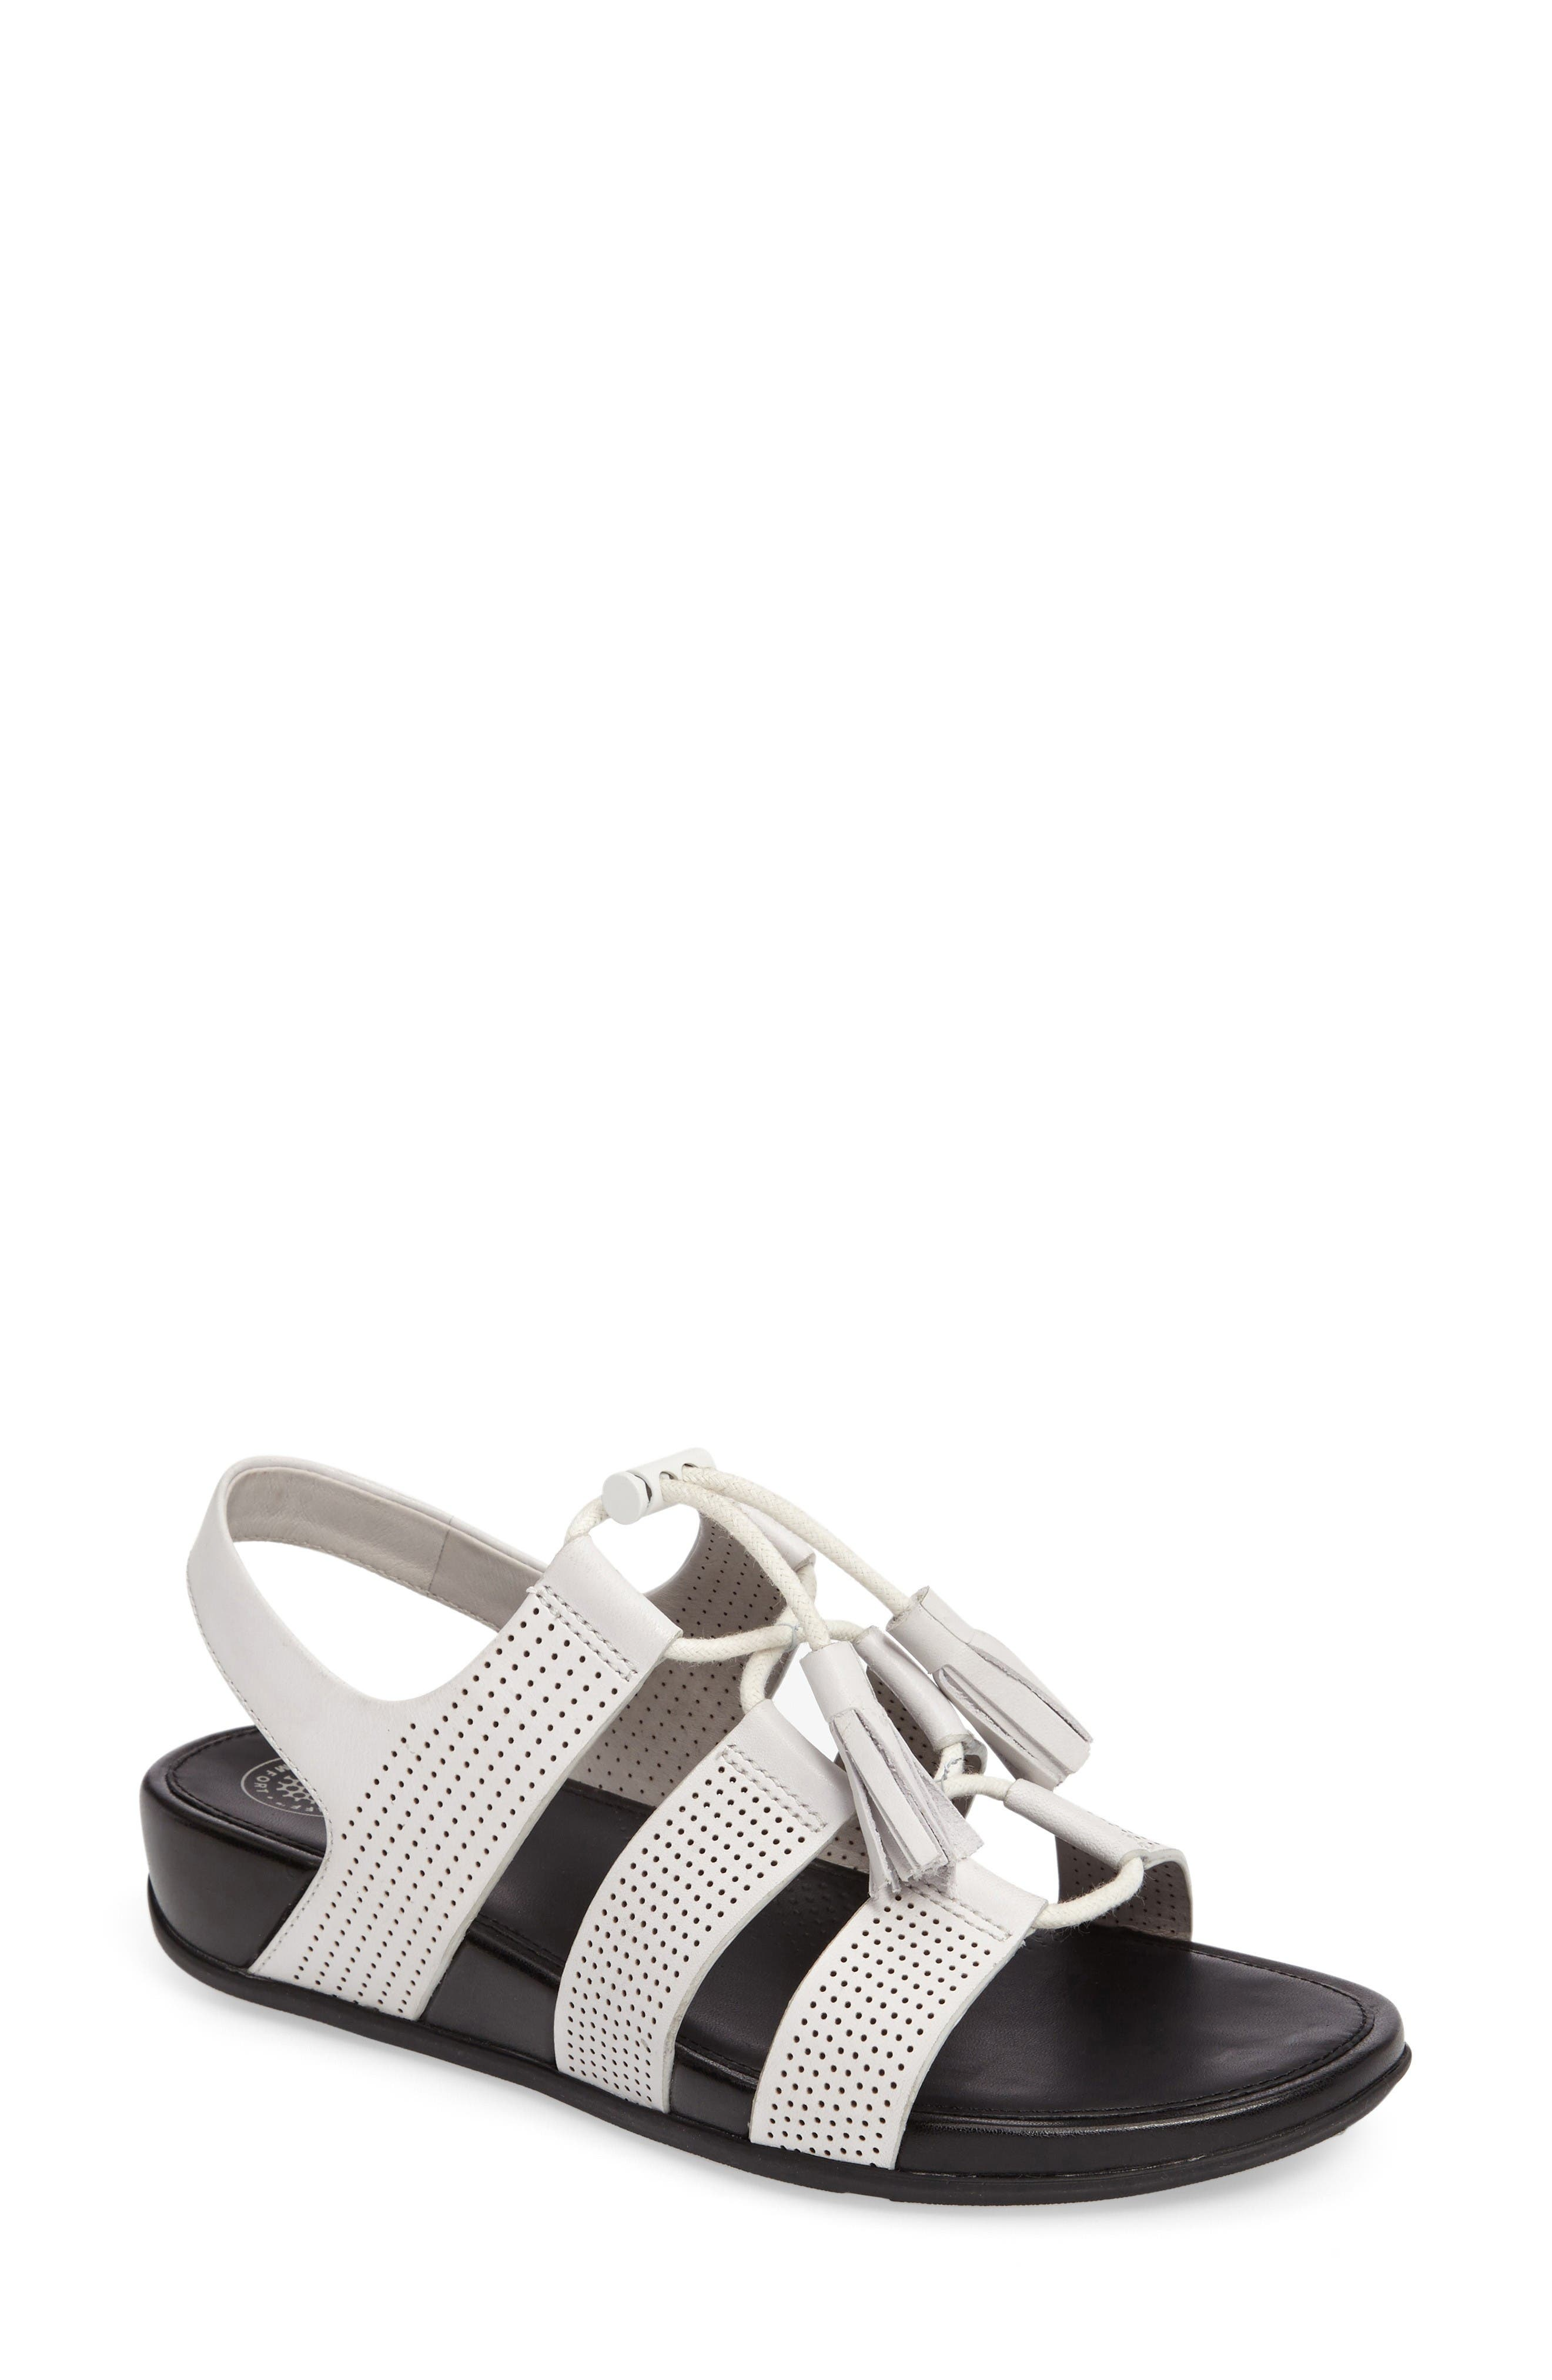 Main Image - FitFlop Gladdie Lace-Up Sandal (Women)